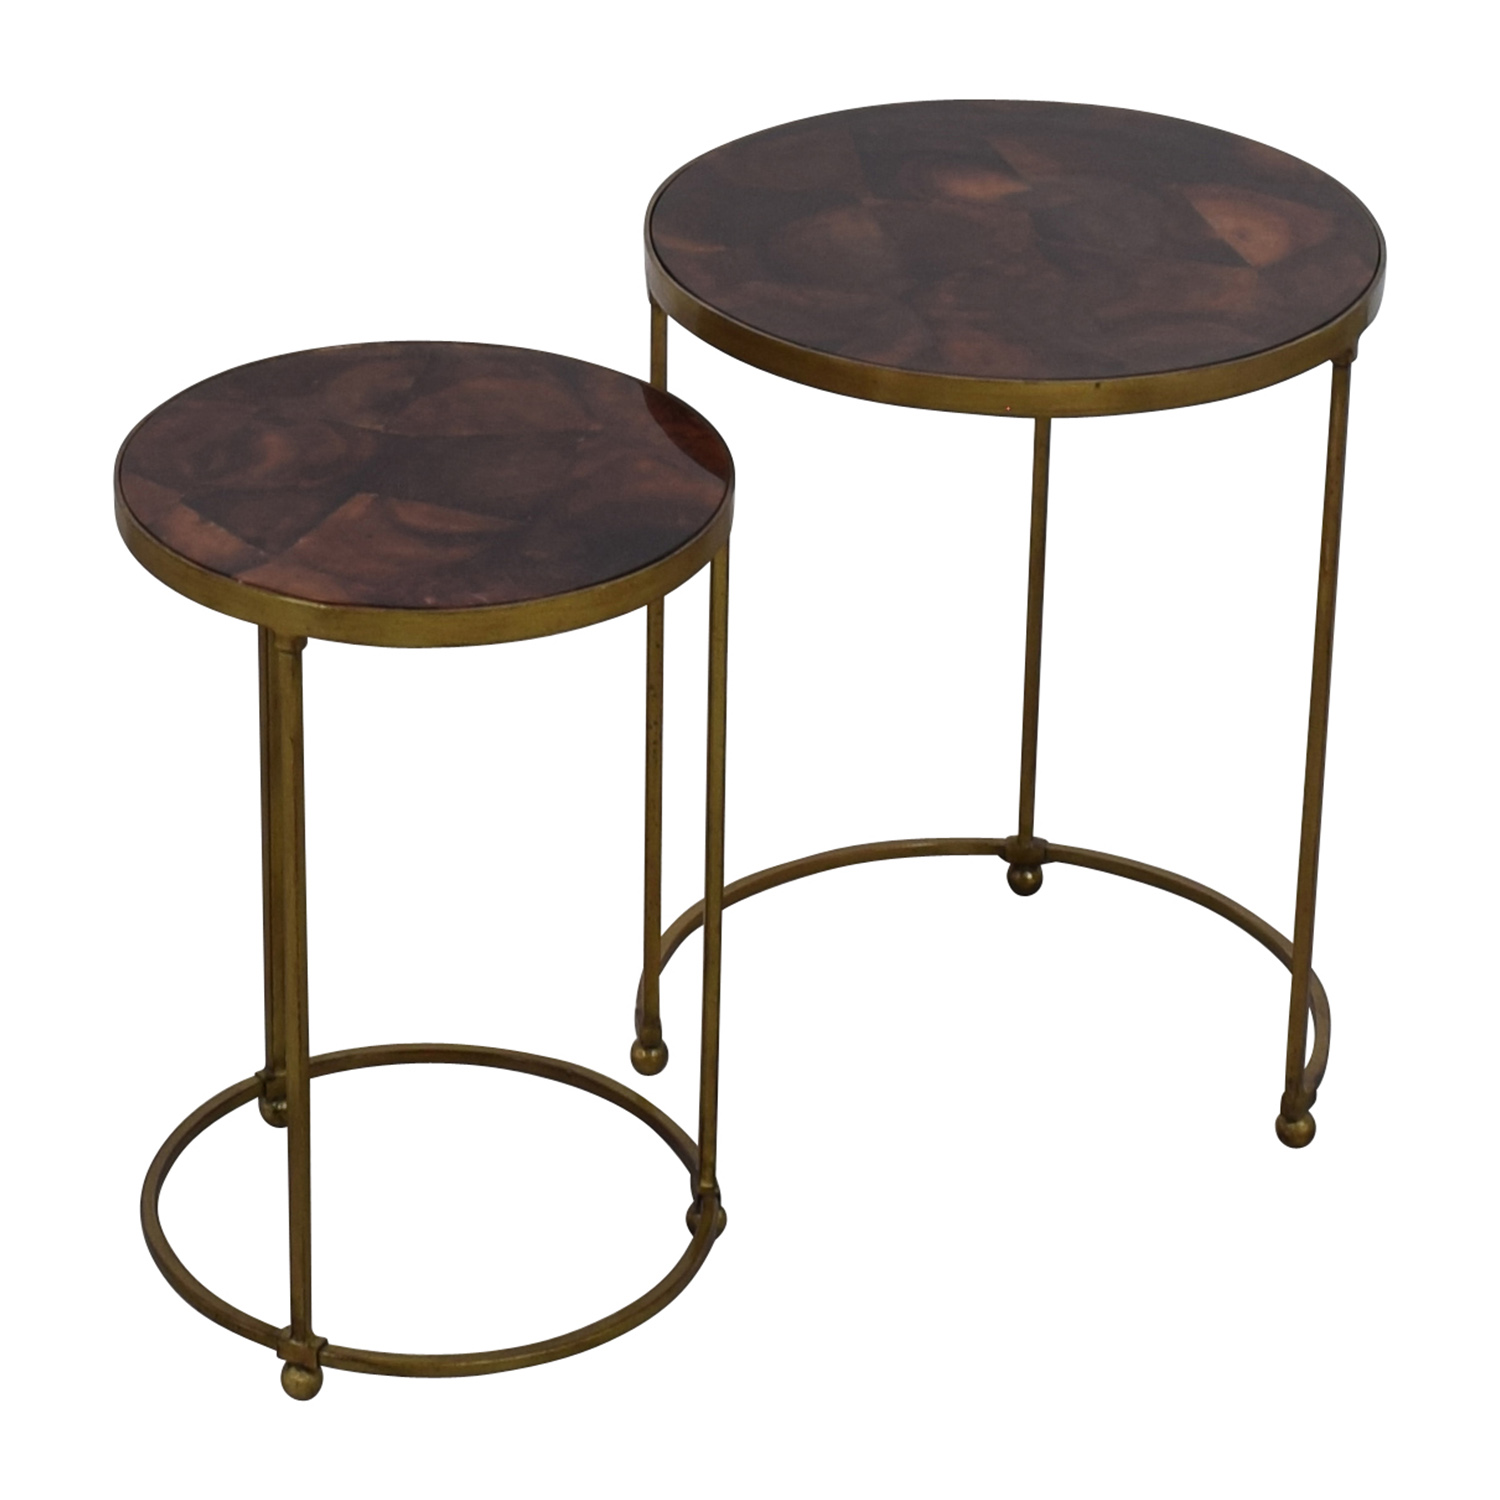 off carpet and home nesting round bronze brass accent tables used end table farmhouse with pipe legs natural edge wood sectional sofas edmonton kohls code danish dining stainless